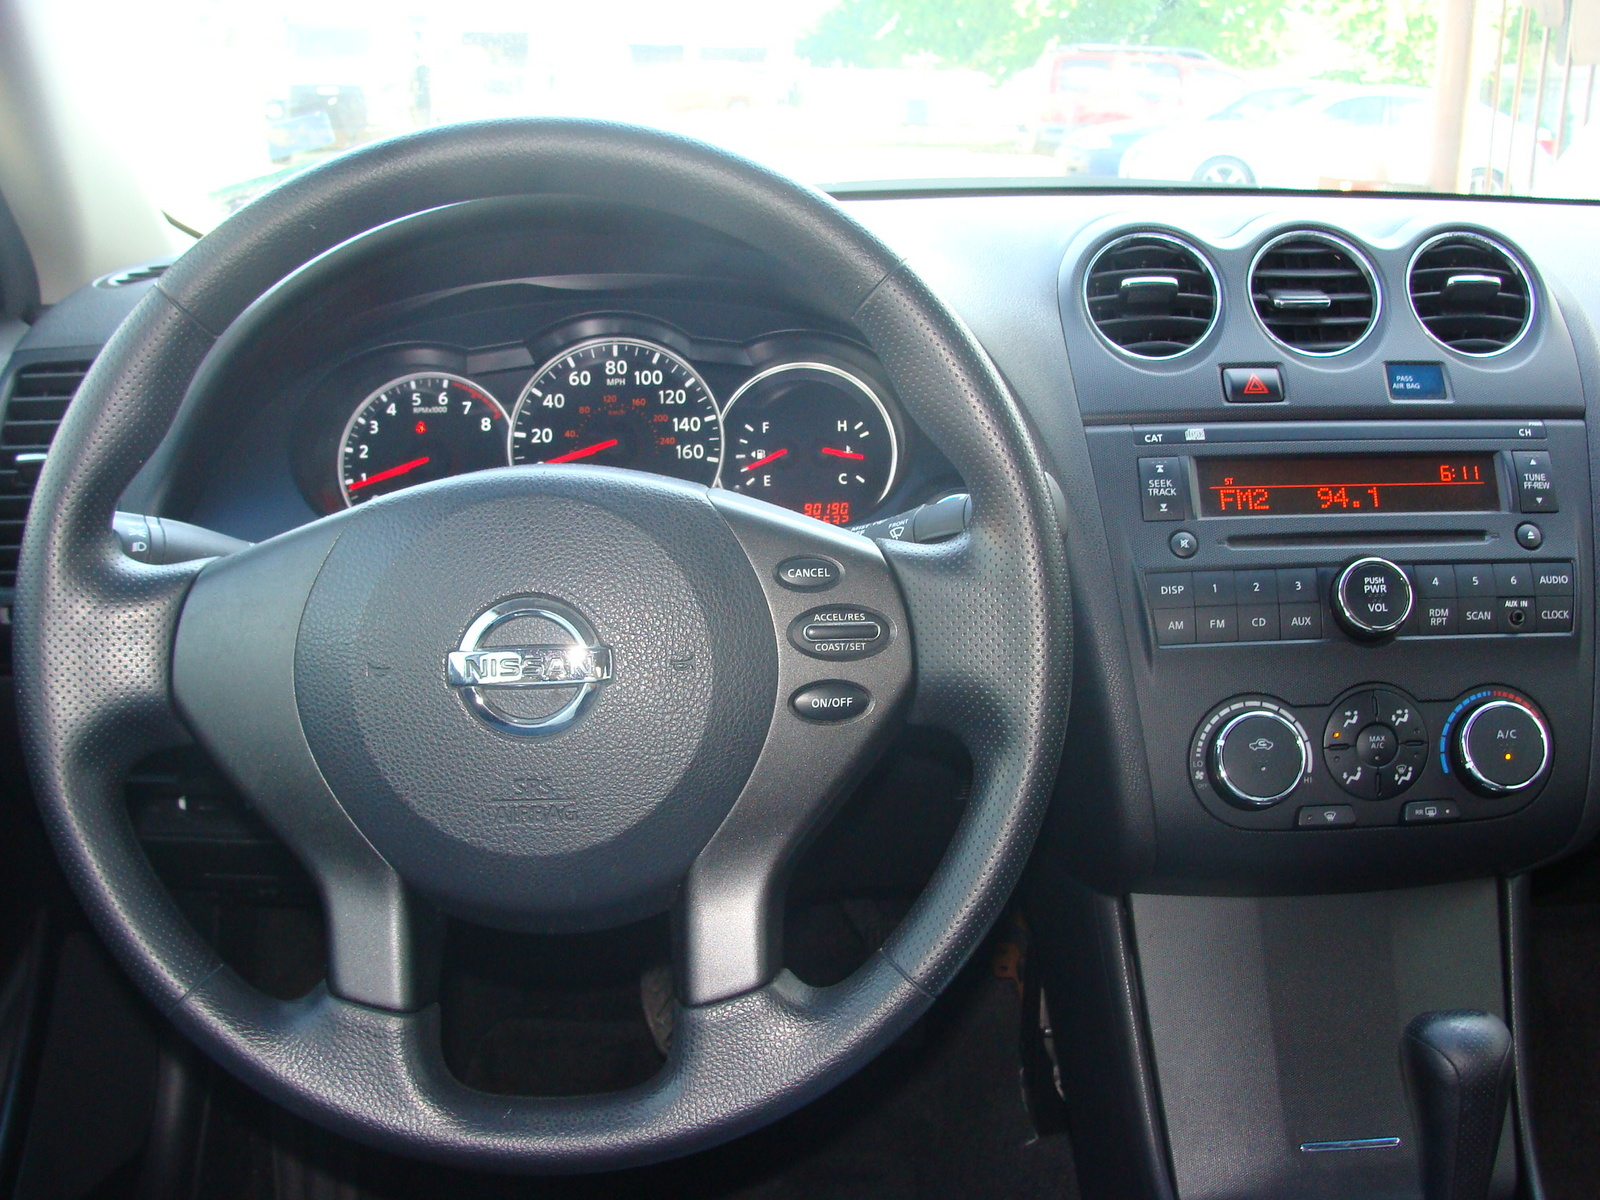 2010 nissan altima interior pictures cargurus. Black Bedroom Furniture Sets. Home Design Ideas